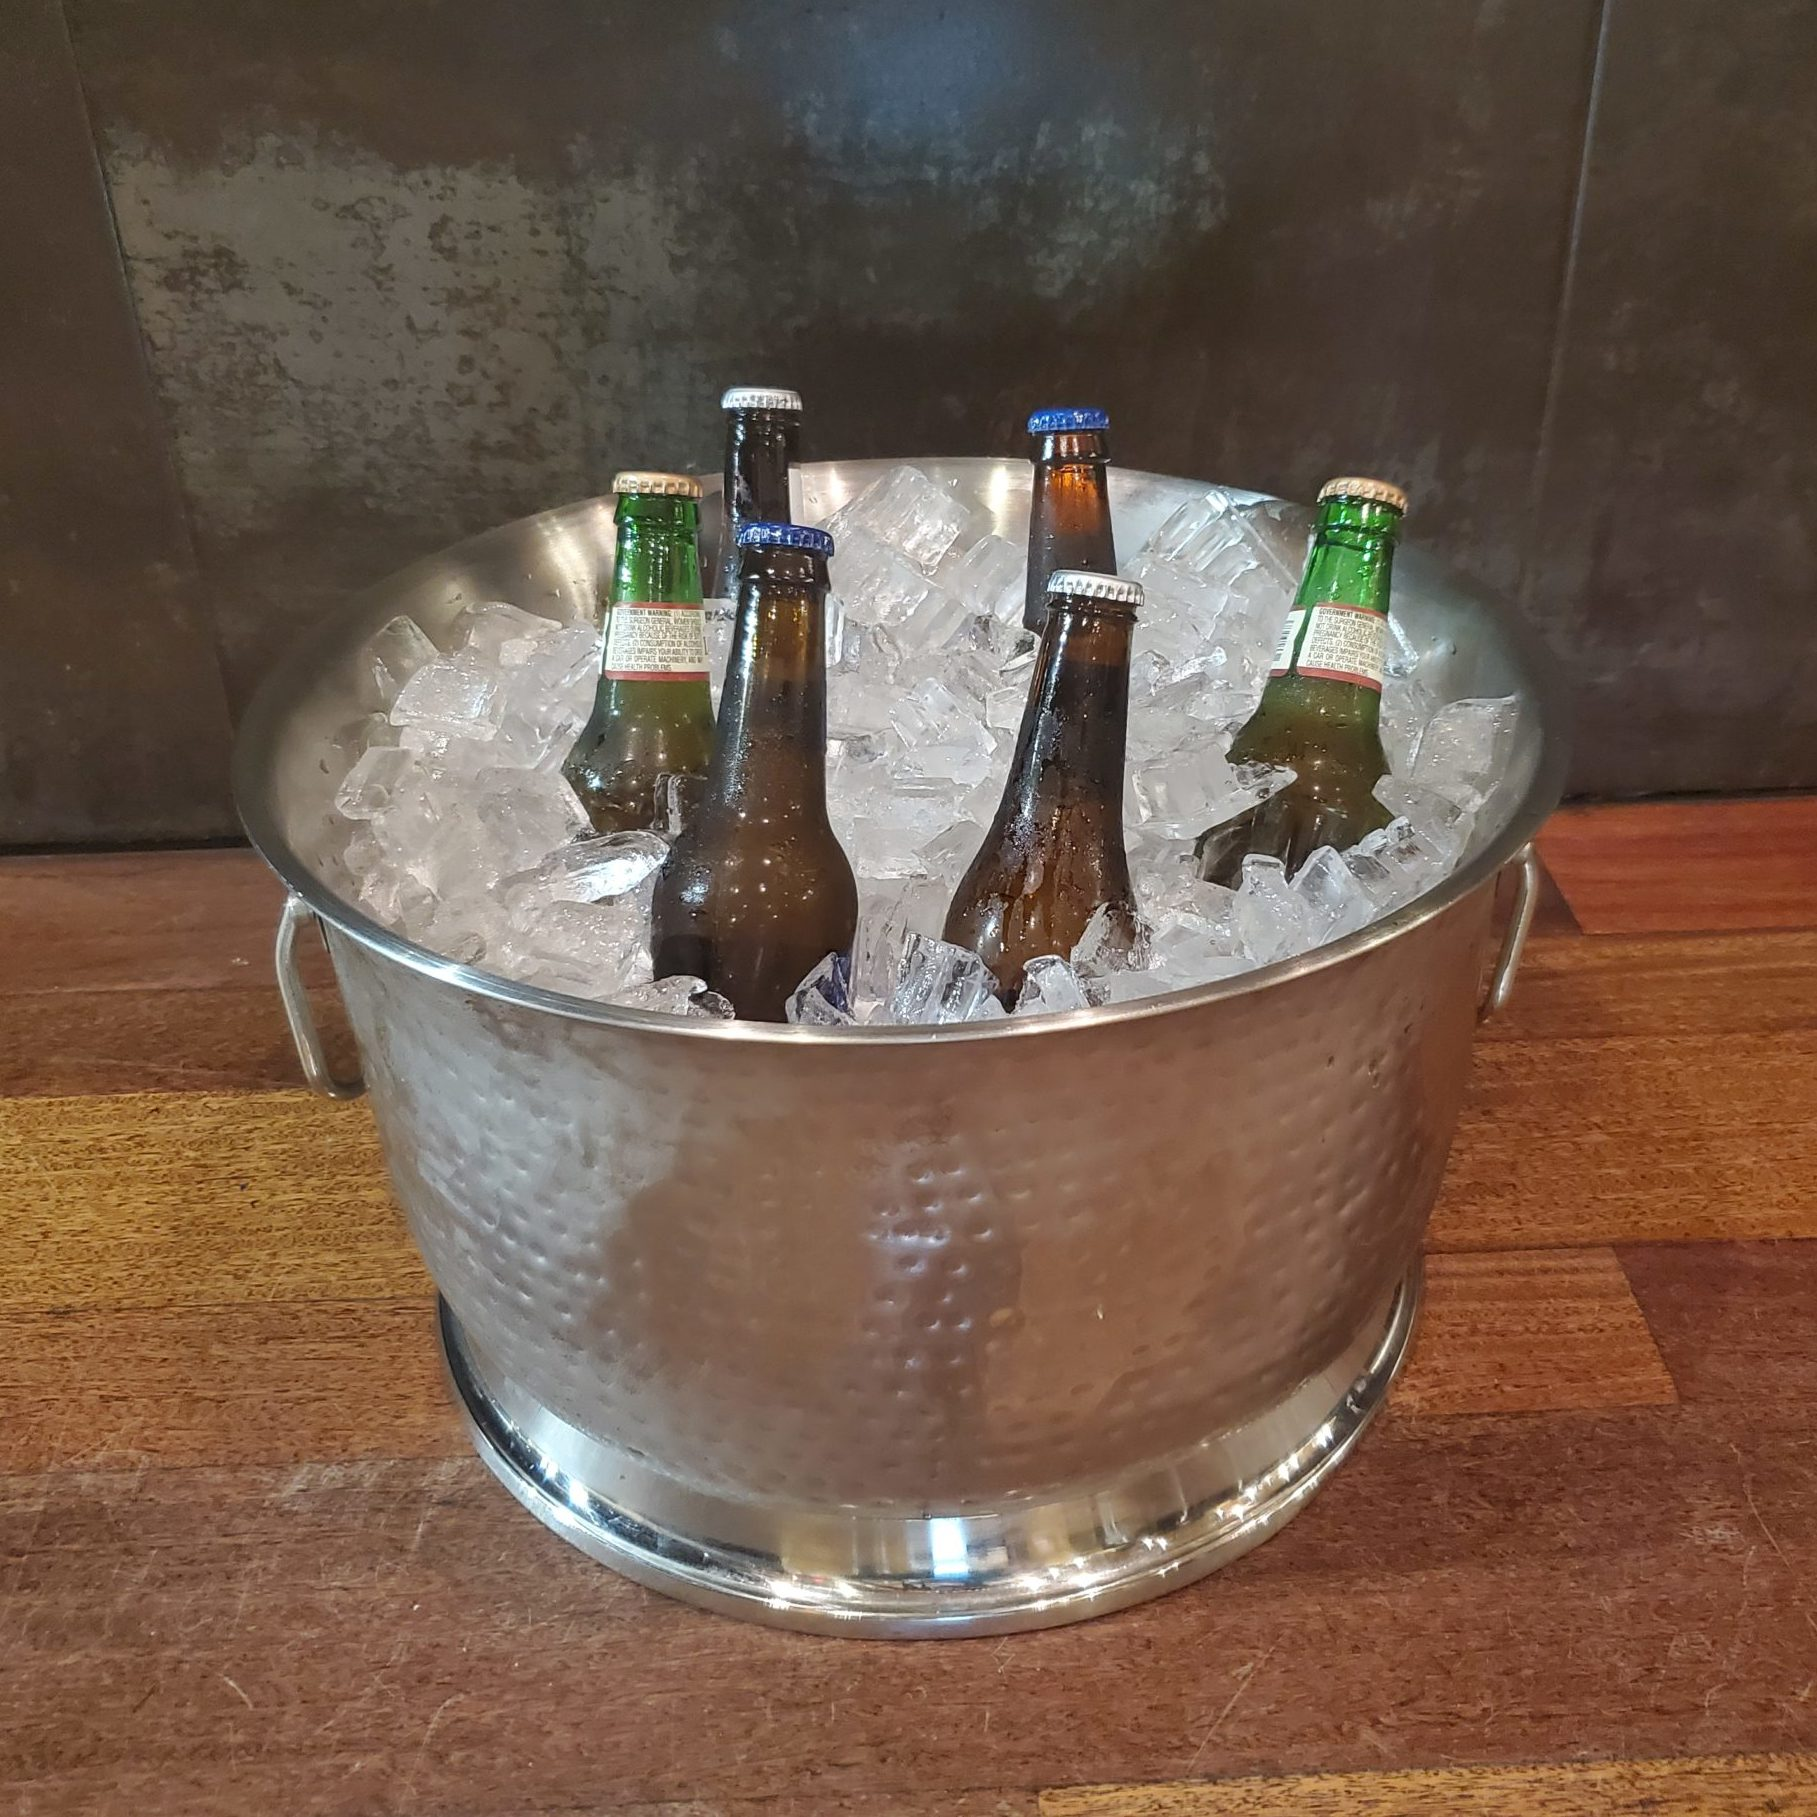 Hammered Steel Bowl filled with House Beers and Ice, offered at downtown St. Pete, Florida venue NOVA 535